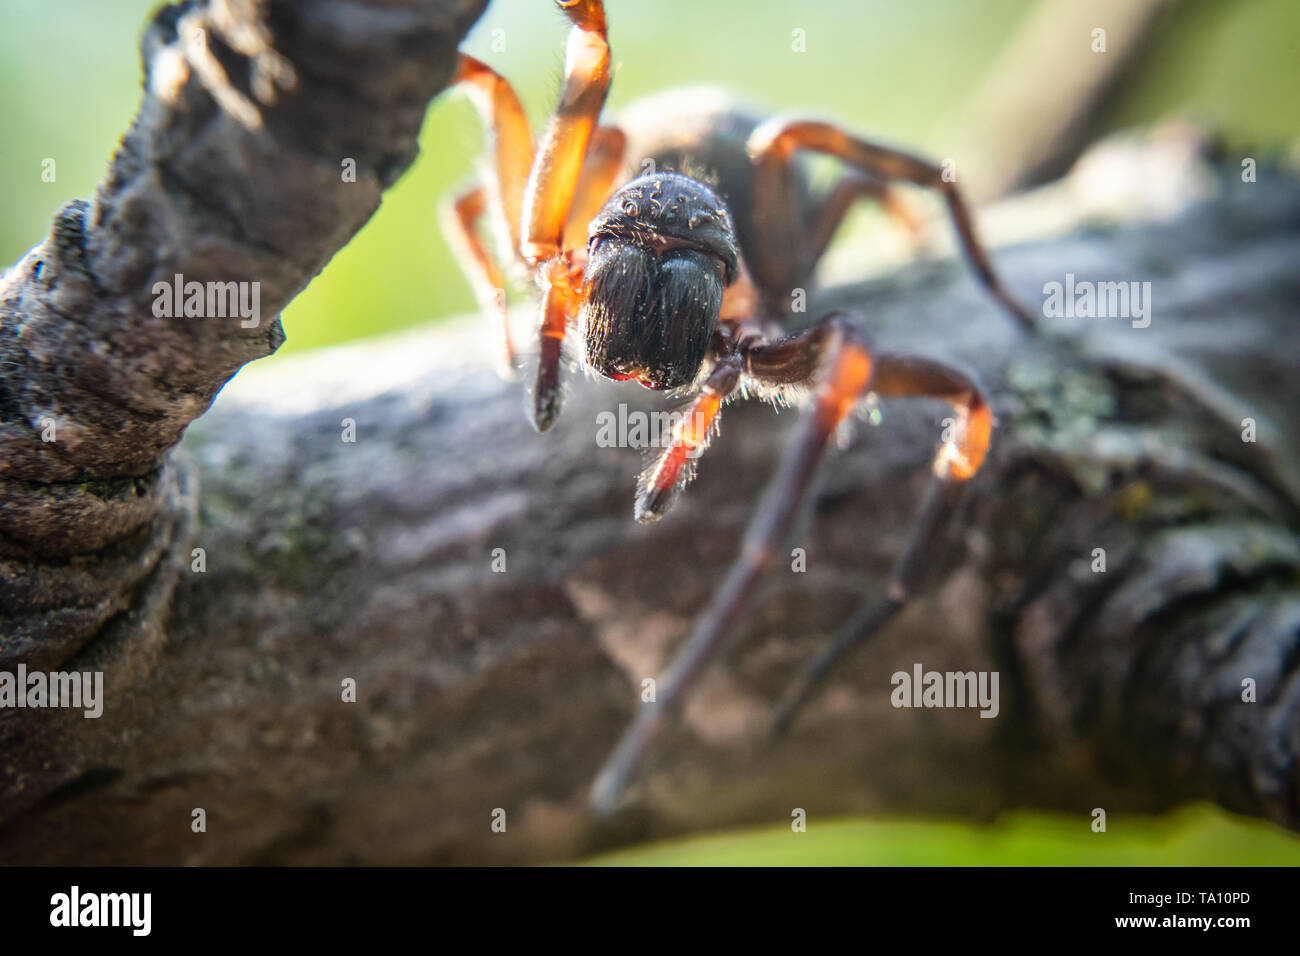 Close up of spider, macro picture - Stock Image